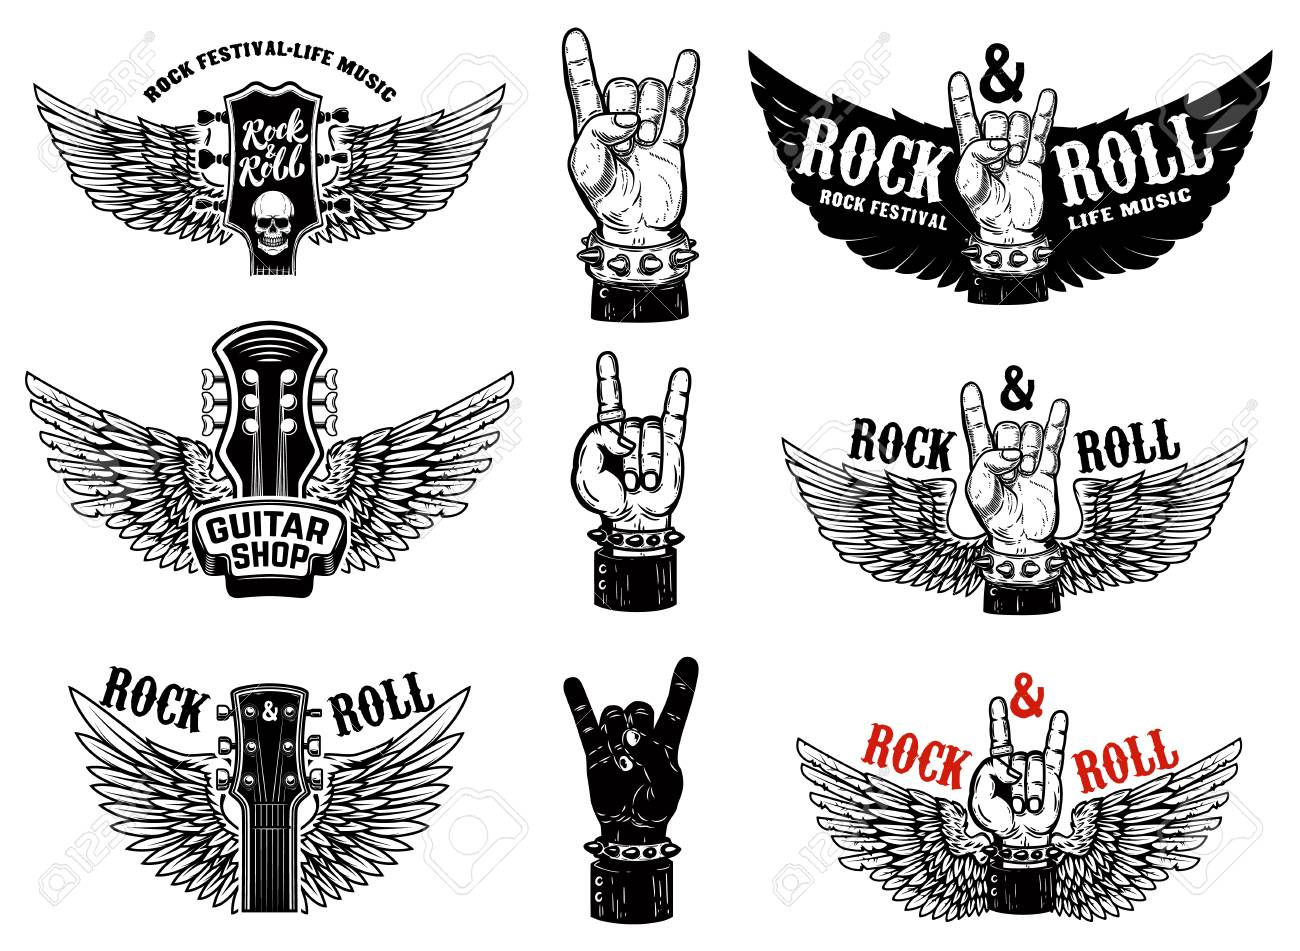 Set of vintage rock music fest emblems. Hand with Rock and roll sign with wings. Design element for logo, label, sign, poster, t shirt. Vector illustration - 109916143